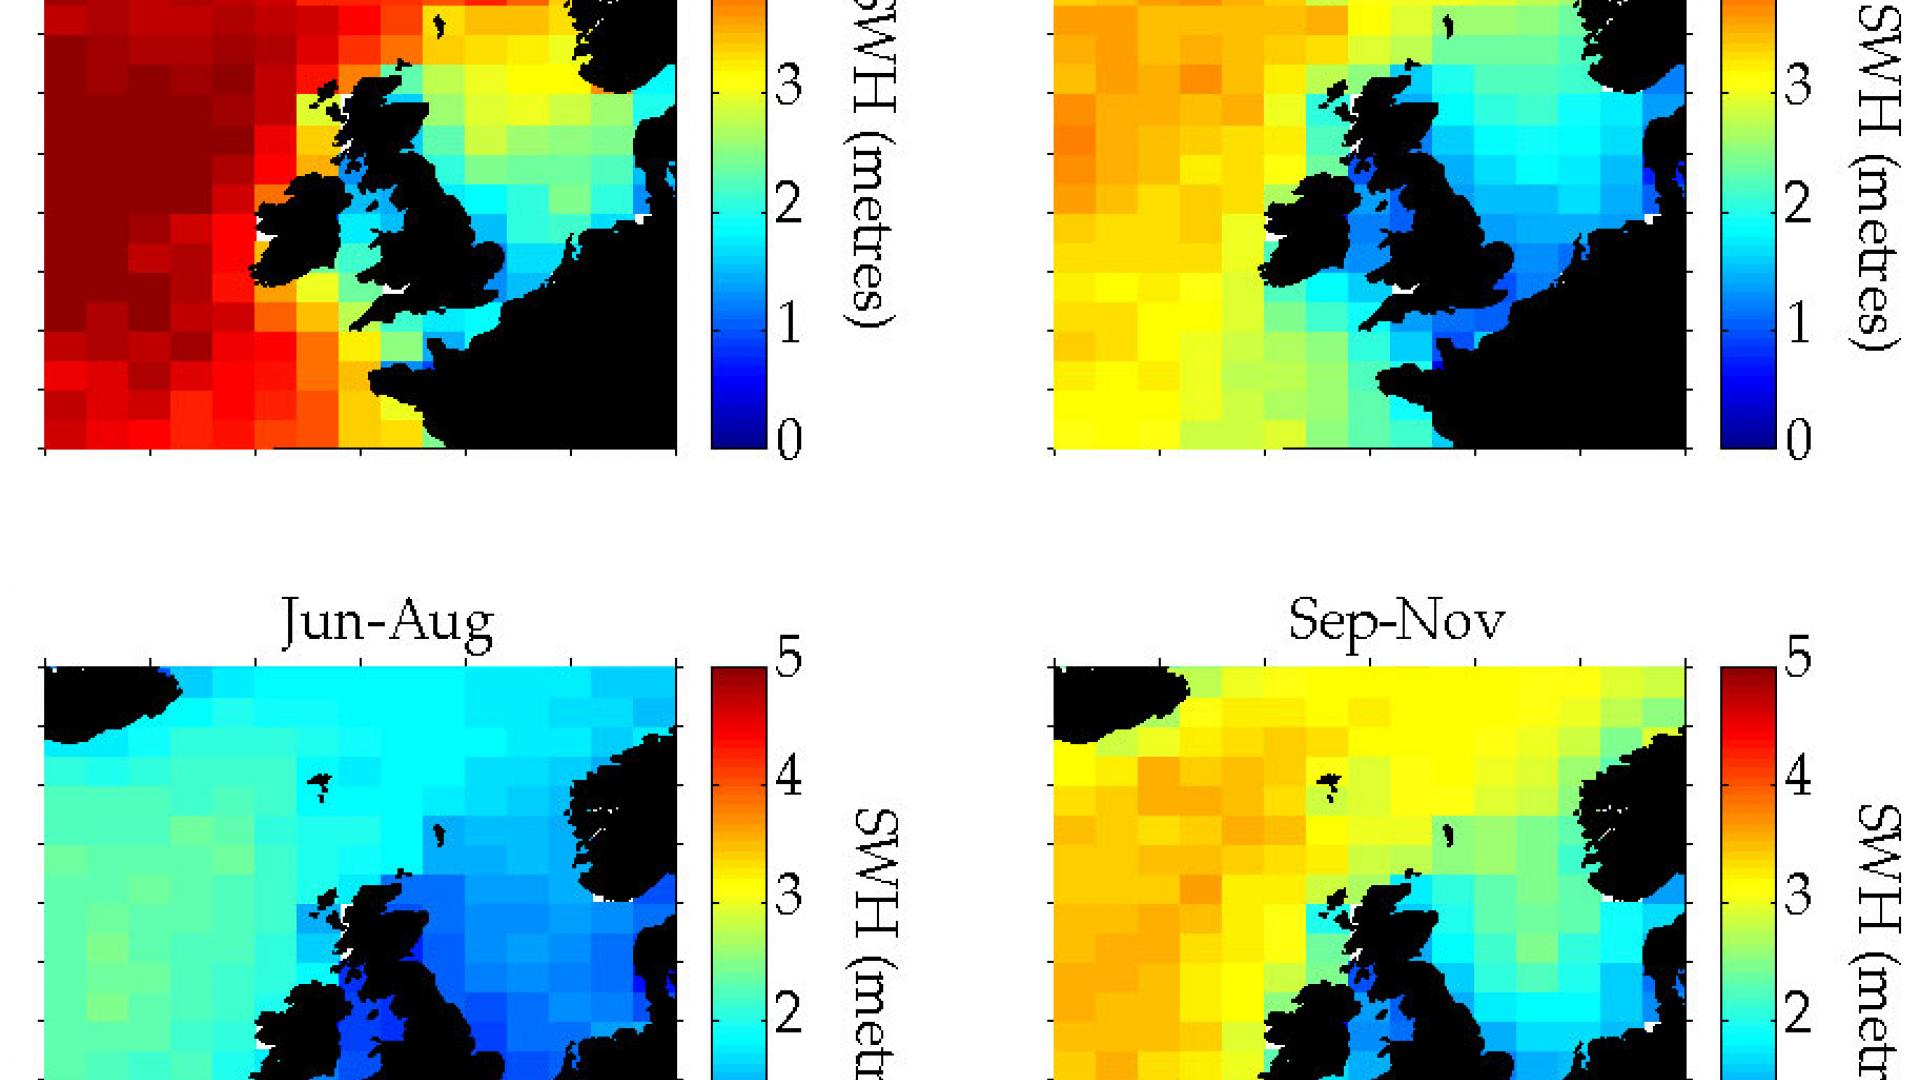 Altimeters monitor wave heights around the British Isles